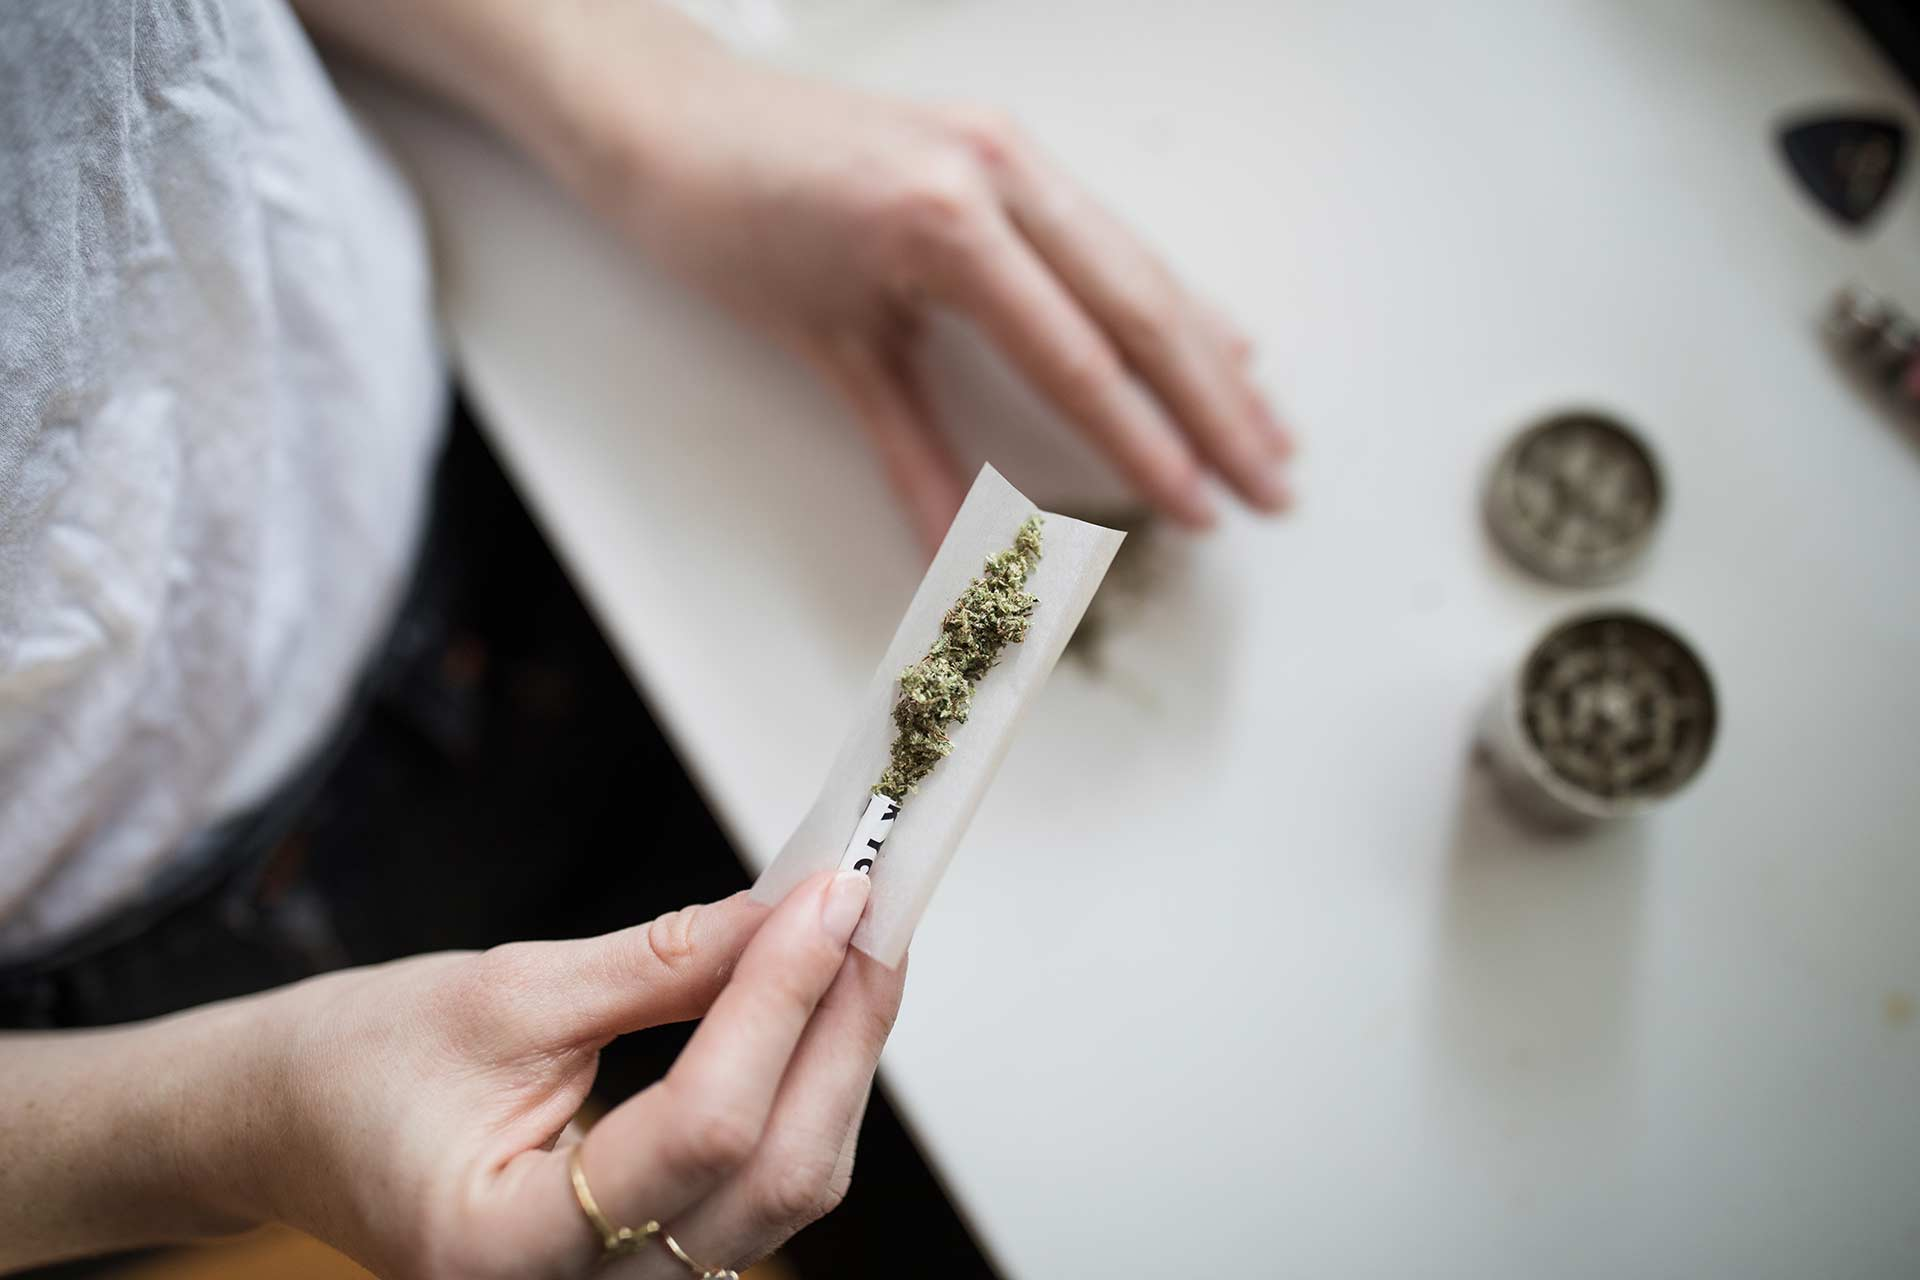 woman holding an unrolled joint